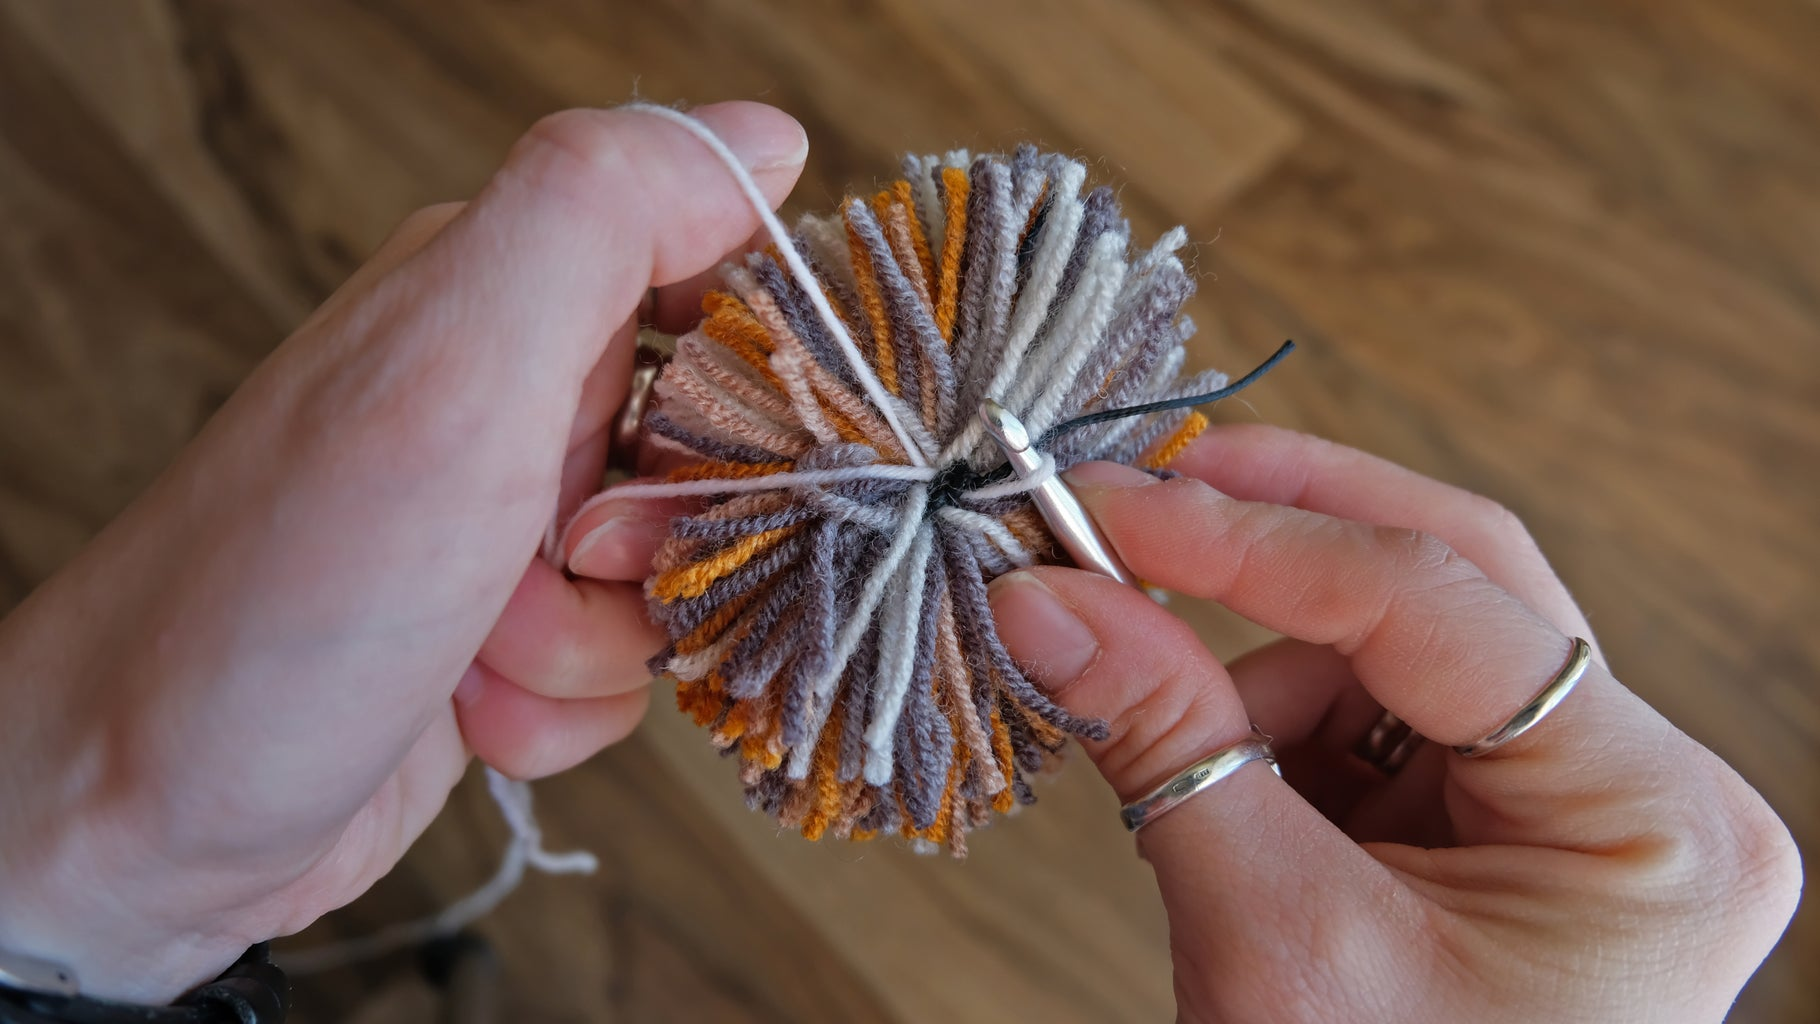 Crocheting. Fixing of Thread and Chain of Air Loops